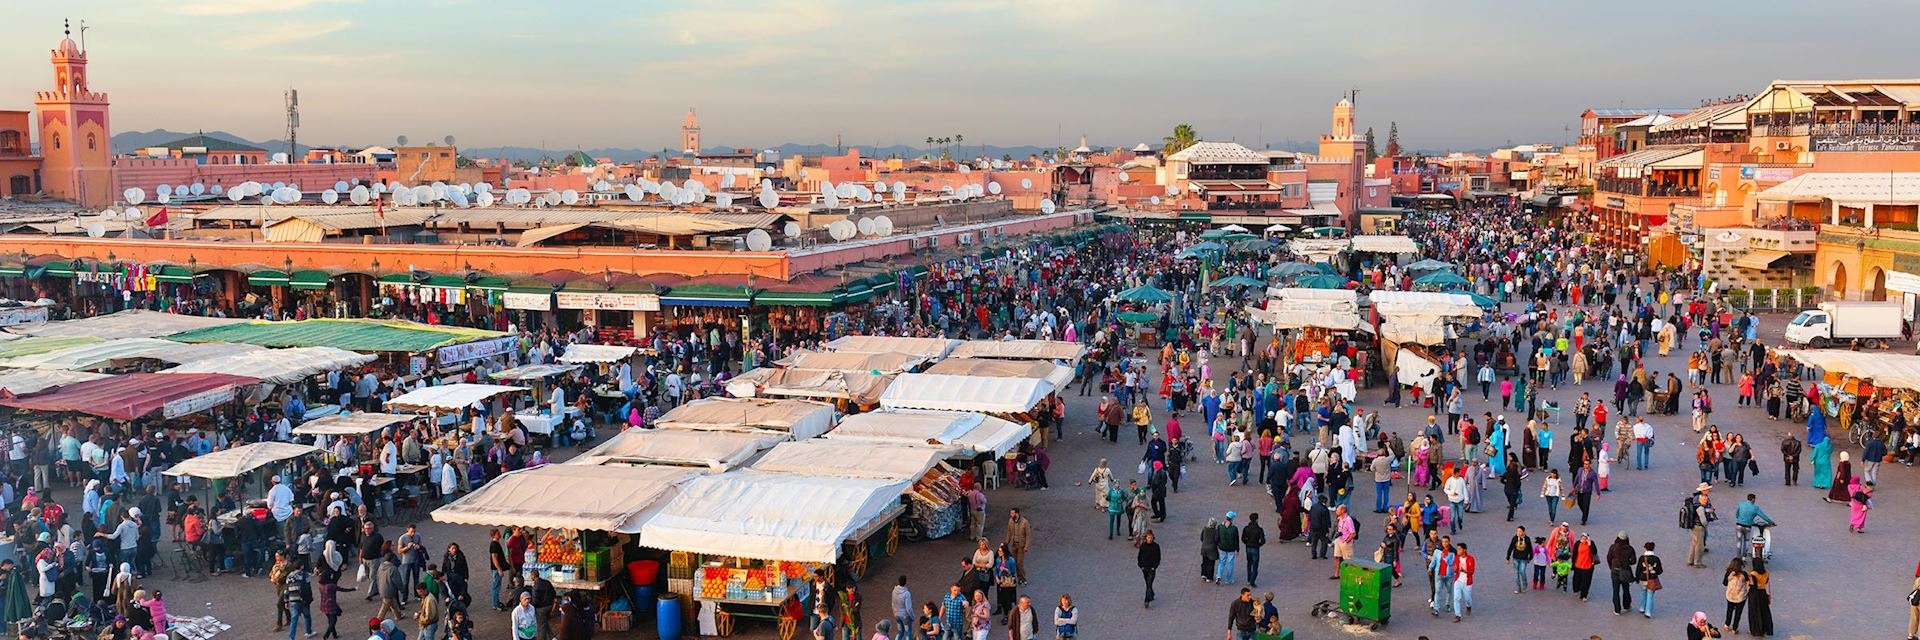 Sunset over Djemaa el Fna, Marrakesh